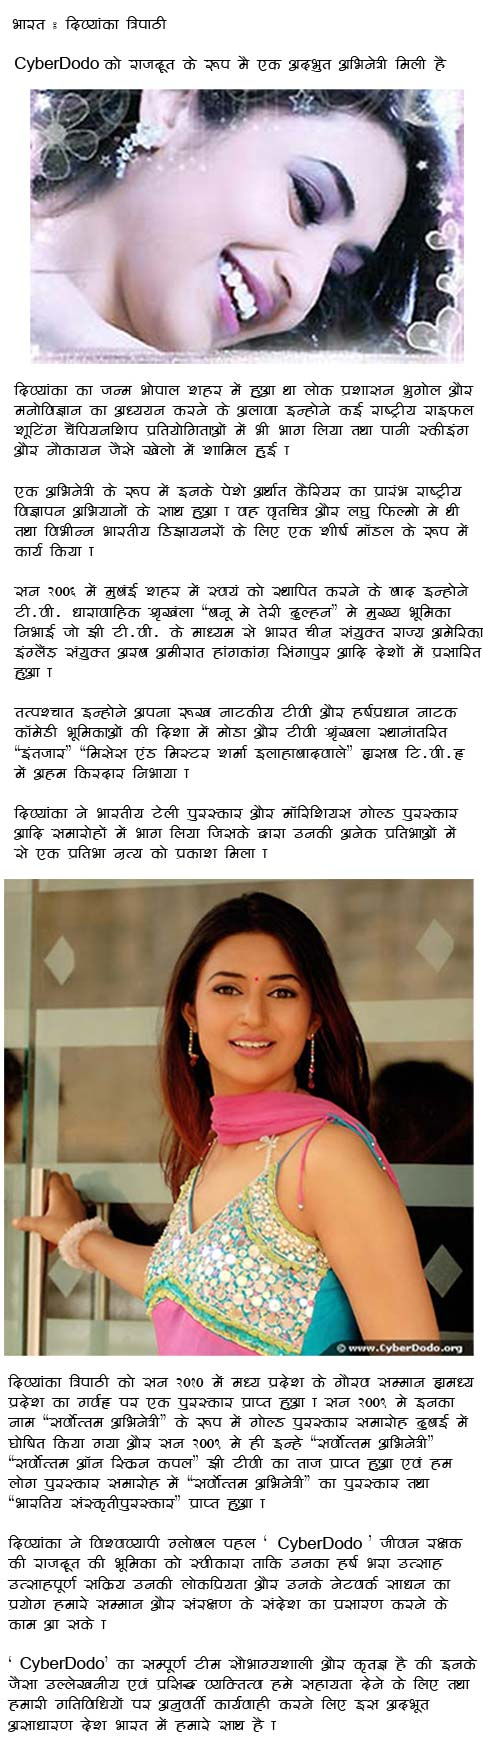 Divyanka Tripathi (Hindi Version)